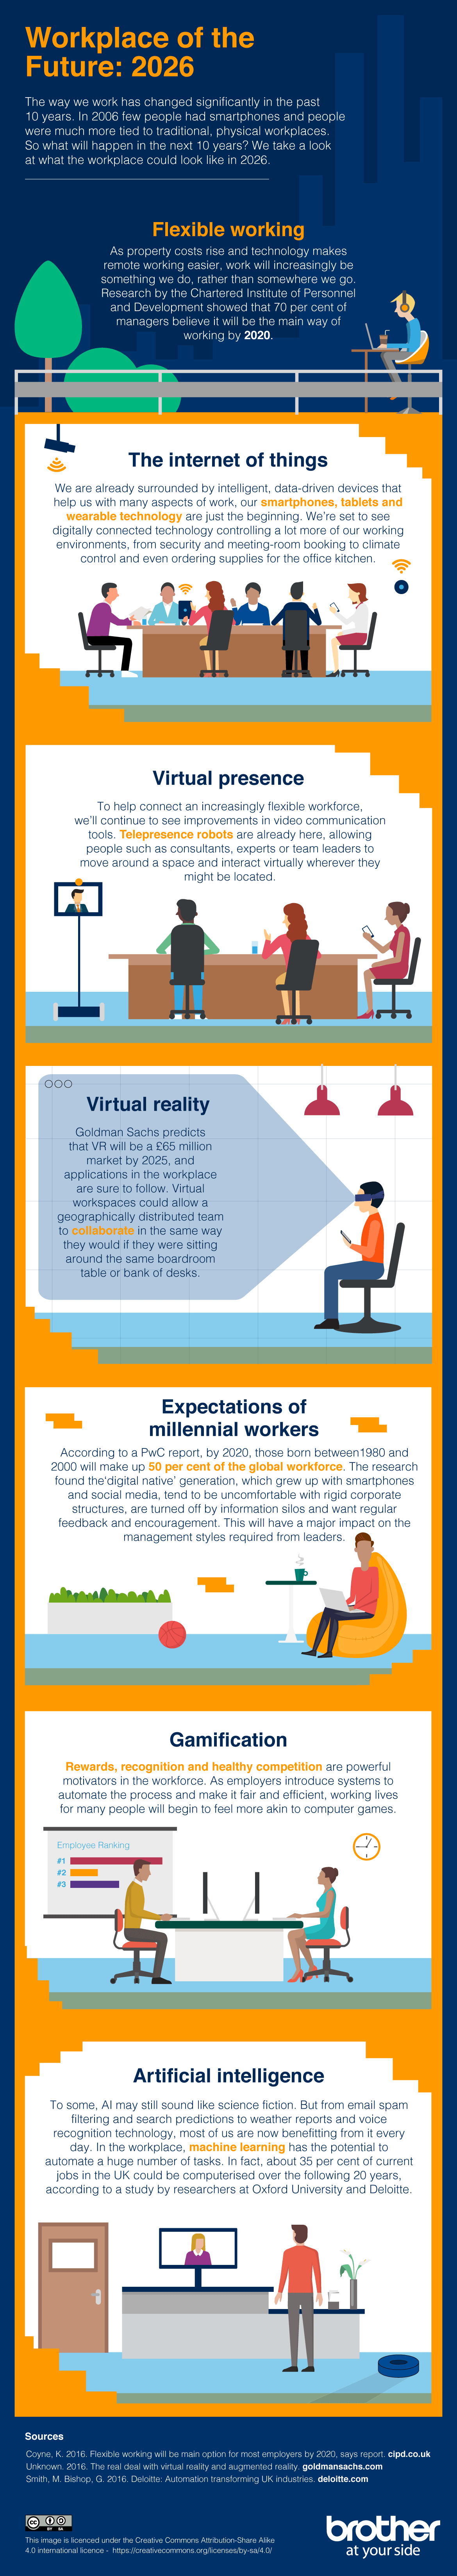 Brother workplace of the future infographic, showing technology improvements for the office